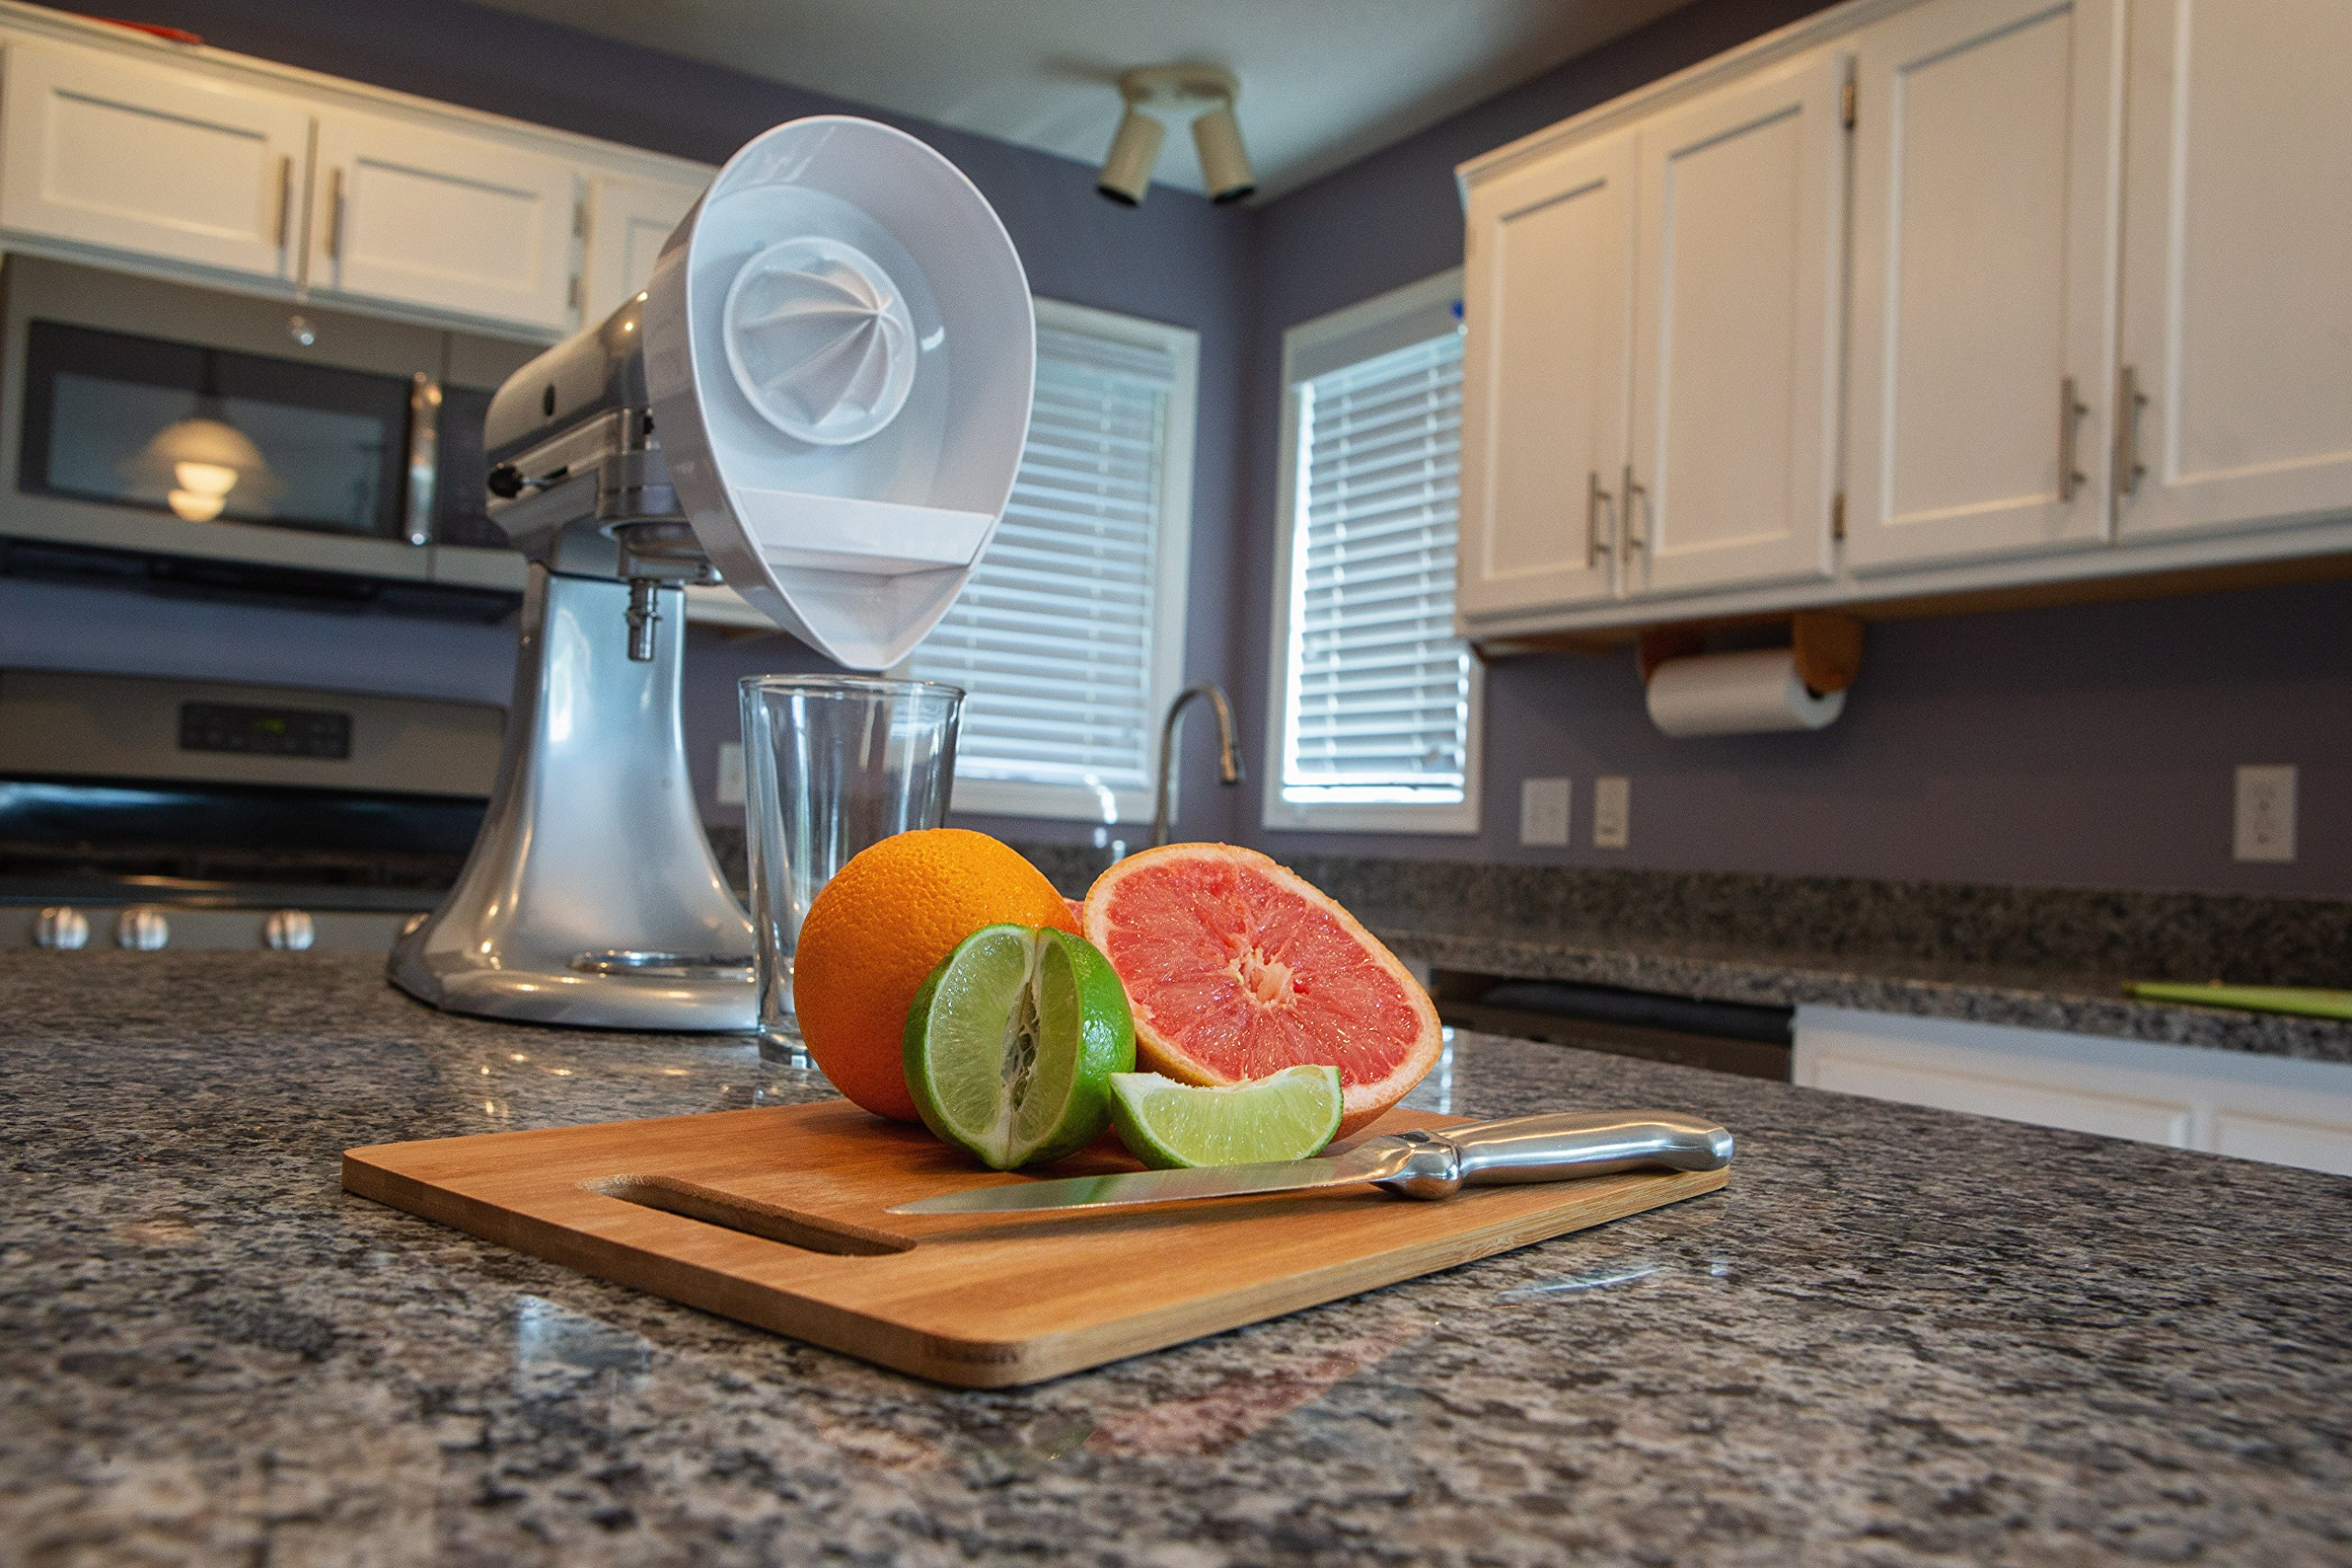 Juicer Attachment For Kitchenaid Stand Mixers By Essential Values by Essential Values (Image #2)